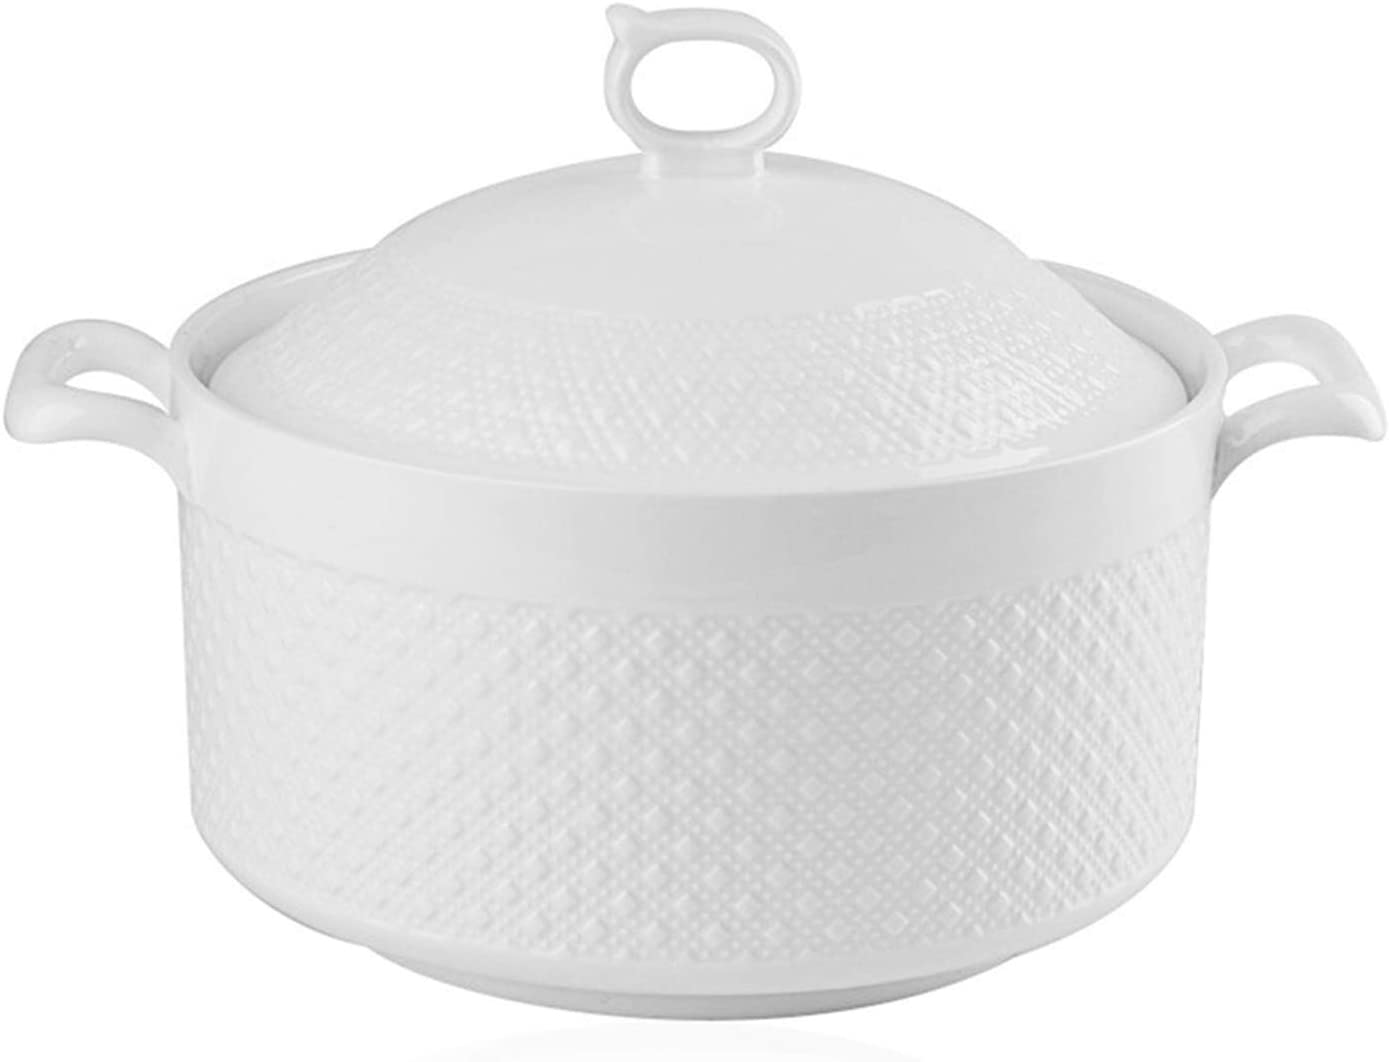 Double Handle Lid Pure White Ceramic BAKOUSTAR Tureen Soup BAKOUSTAR Ceramic Round White Dish Casserole/Clay Pot/Earthen Pot/Ceramic Cookware With White Lid Heat-Resistant For Gift Box (9In)